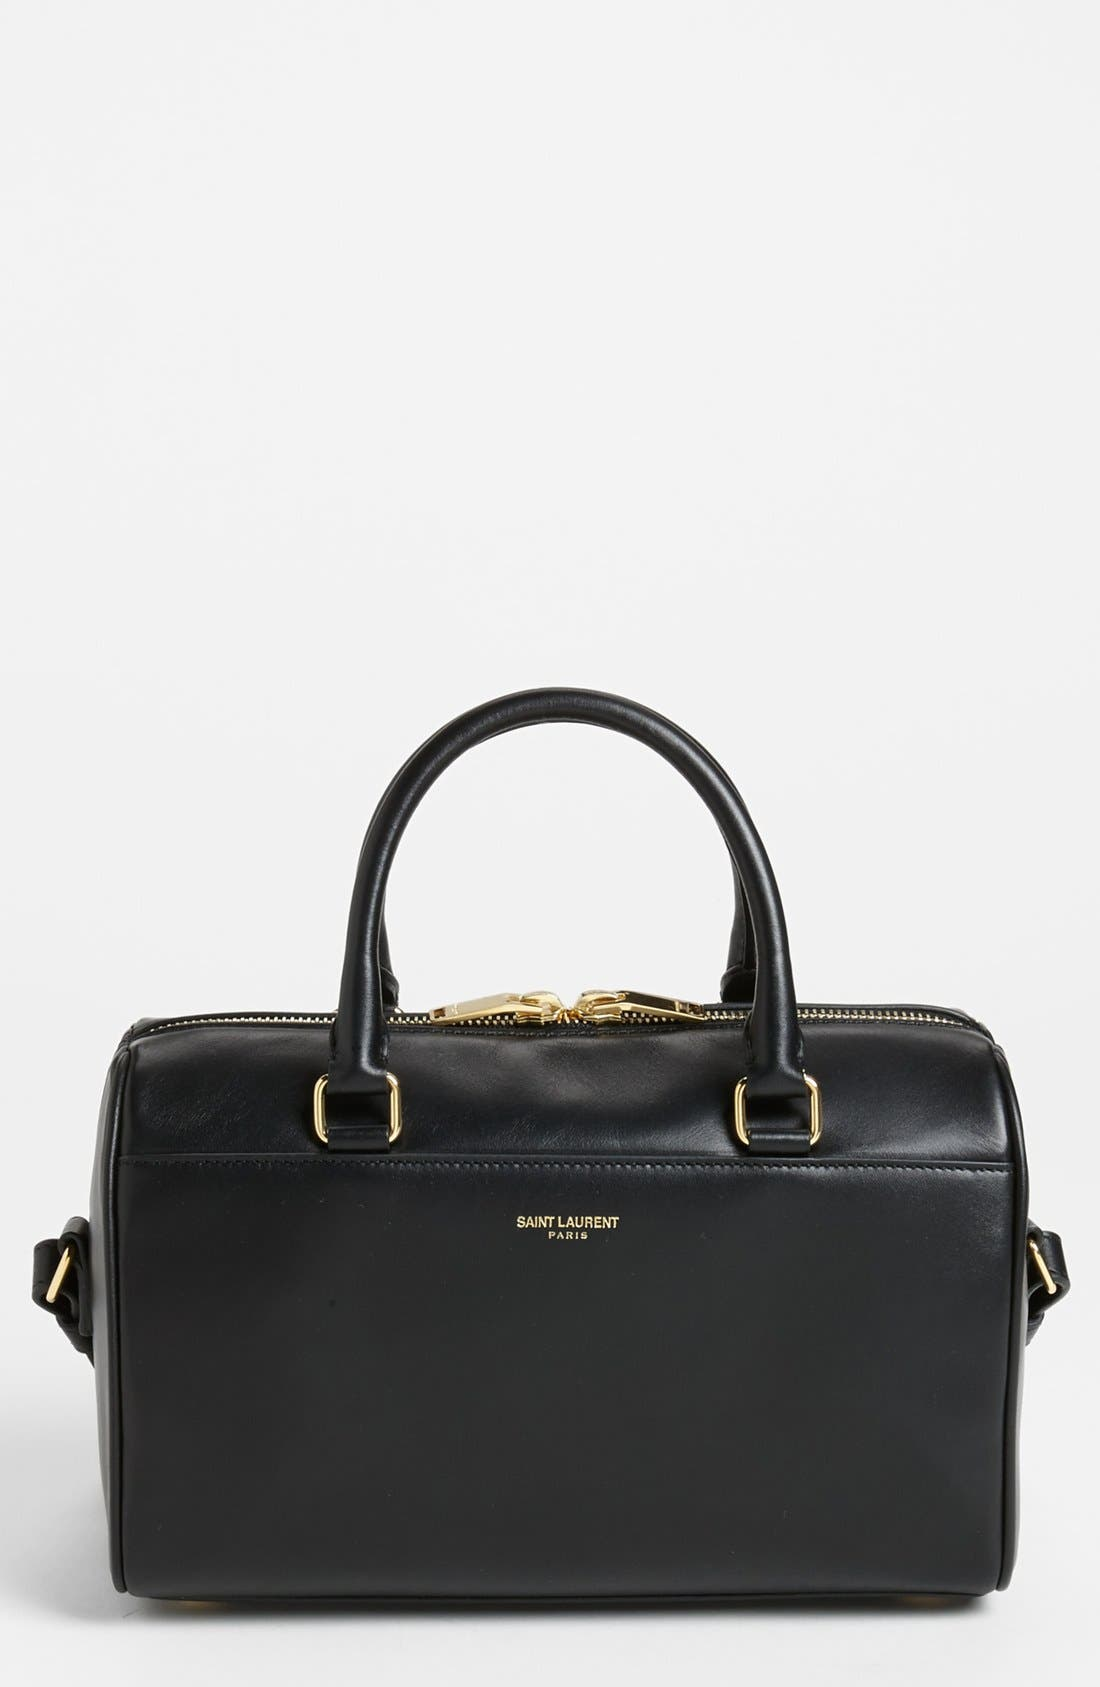 Alternate Image 1 Selected - Saint Laurent 'Small Duffle 3' Leather Crossbody Satchel